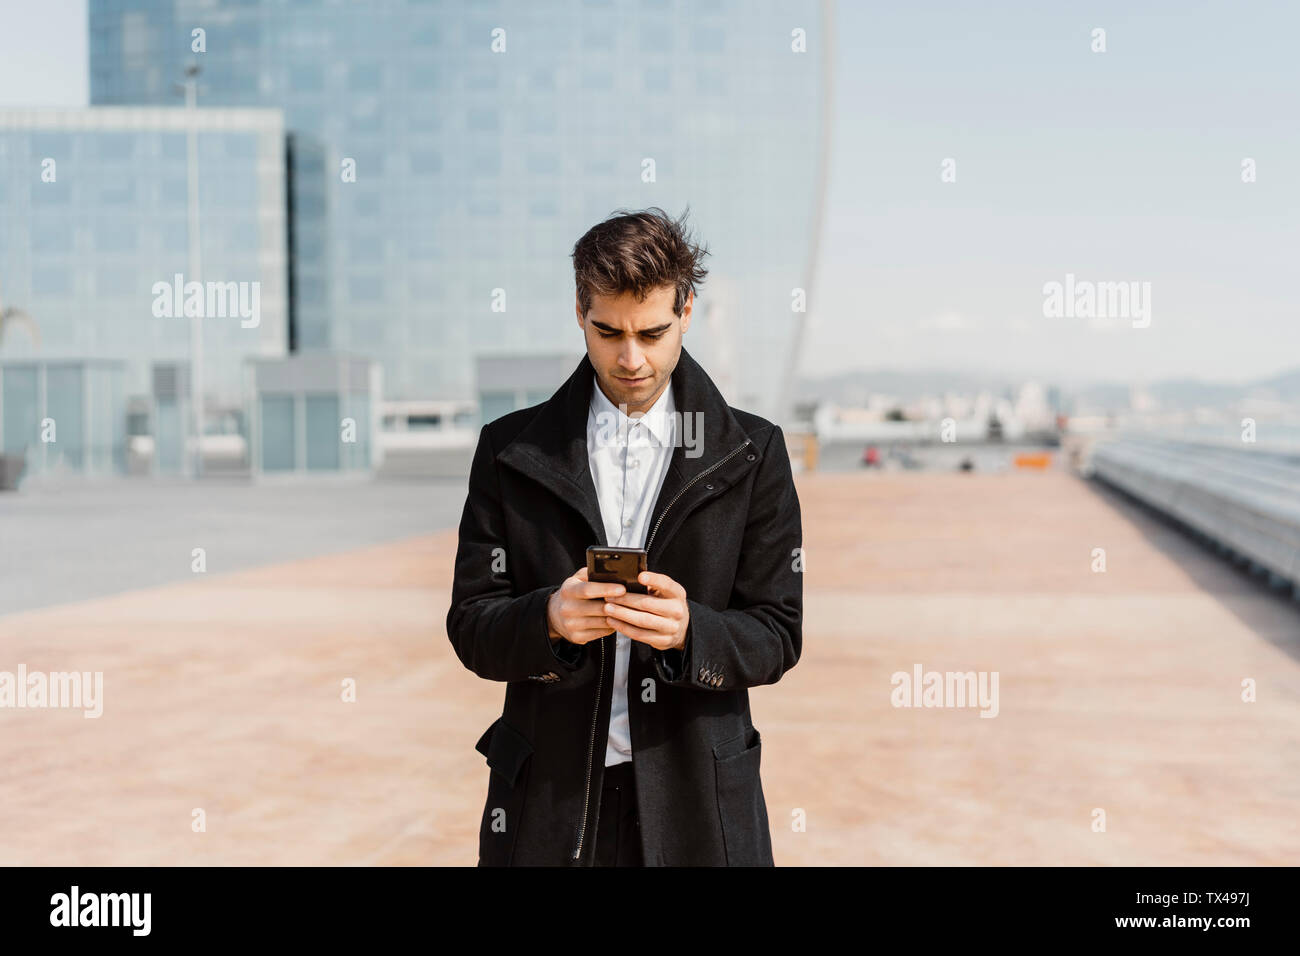 Businessman using cell phone in the city - Stock Image